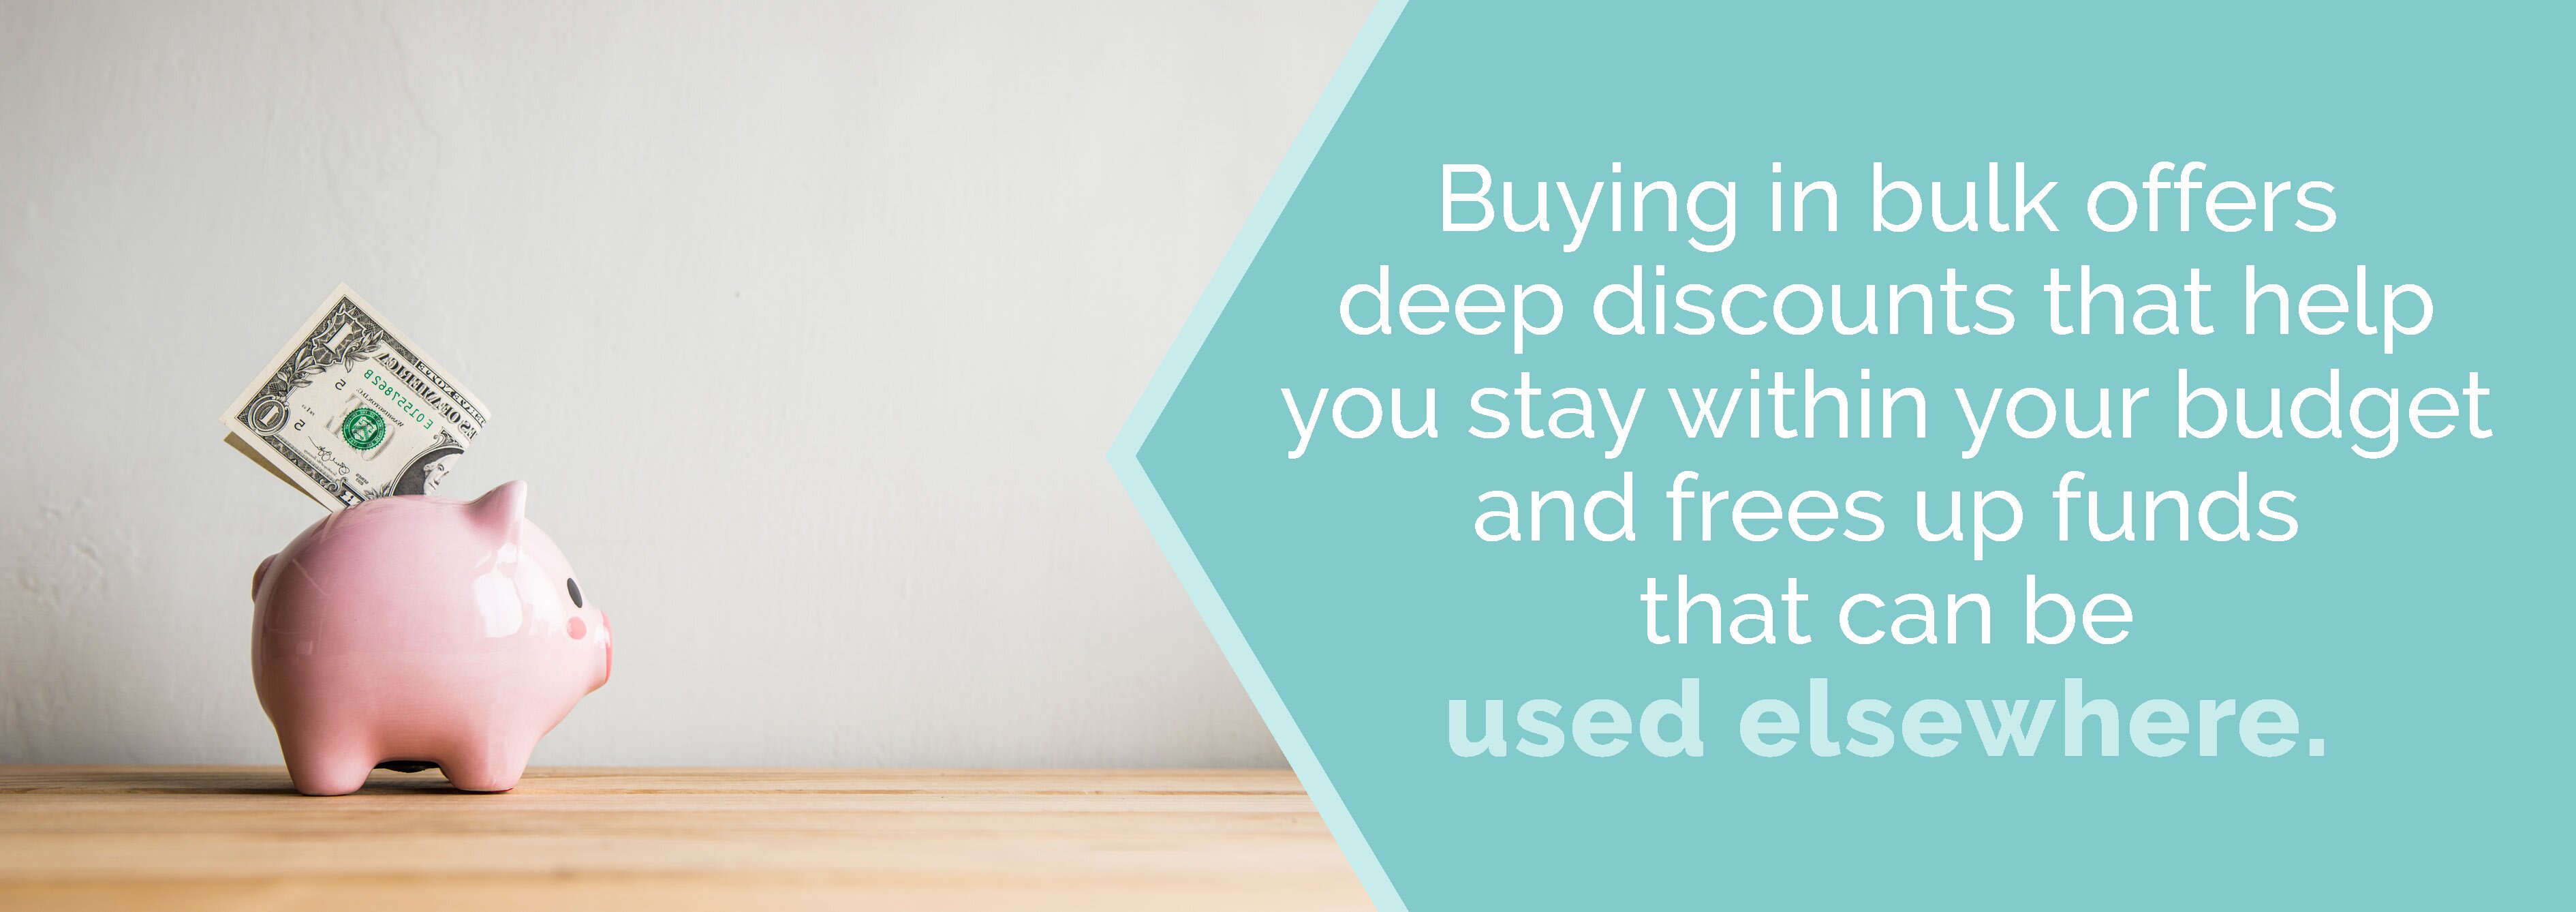 Buying in bulk offers deep discounts to keep you within your budget.